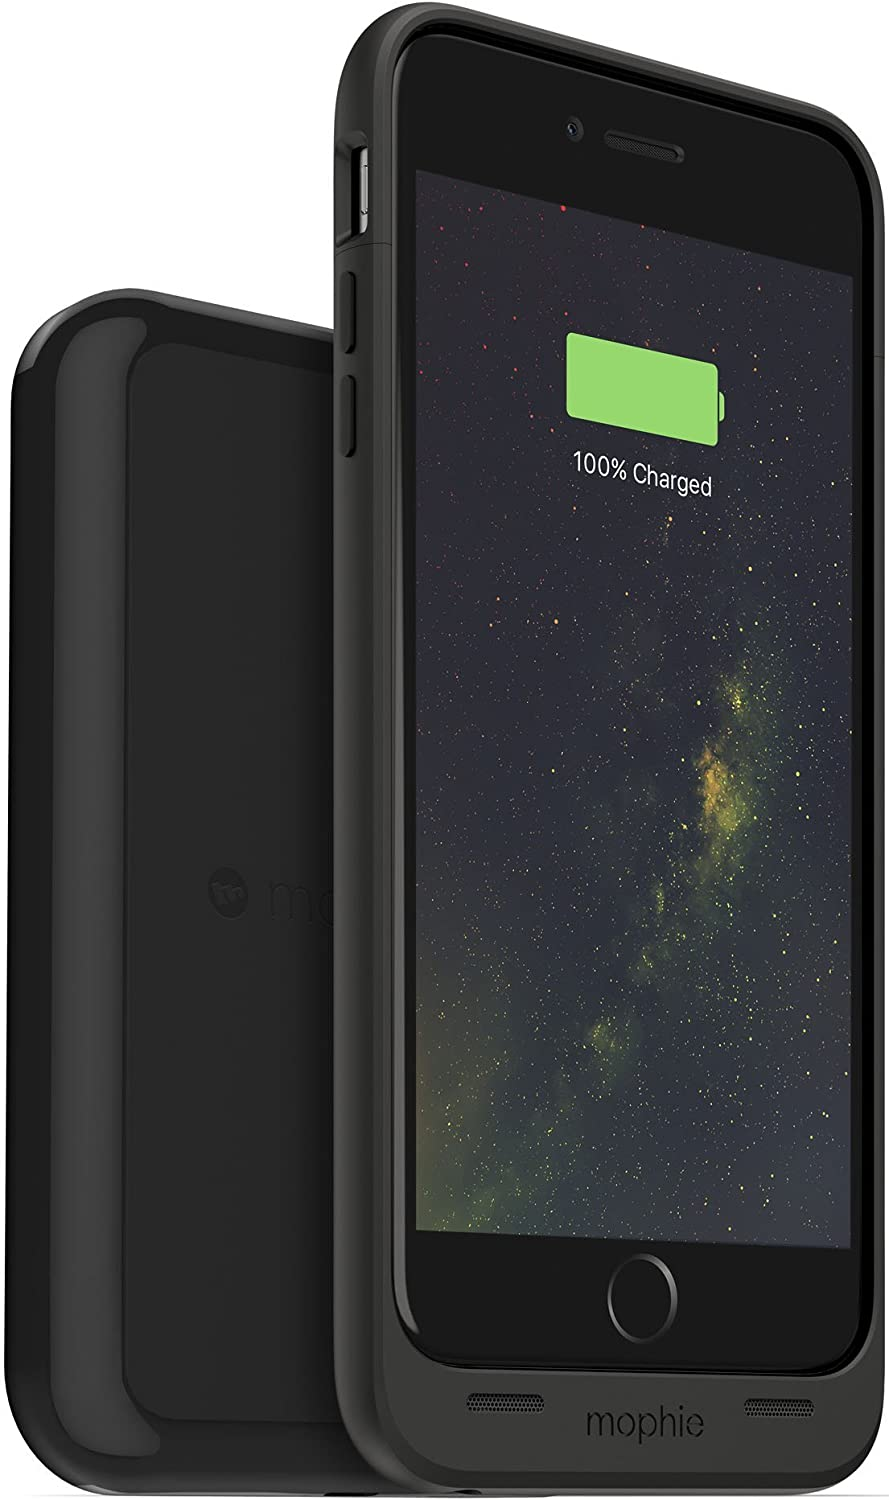 mophie juice pack wireless and charging base - Charge Force Wireless Power - Wireless Charging Protective Battery Pack Case and Magnetic Charging Base for iPhone 6/6S – Black